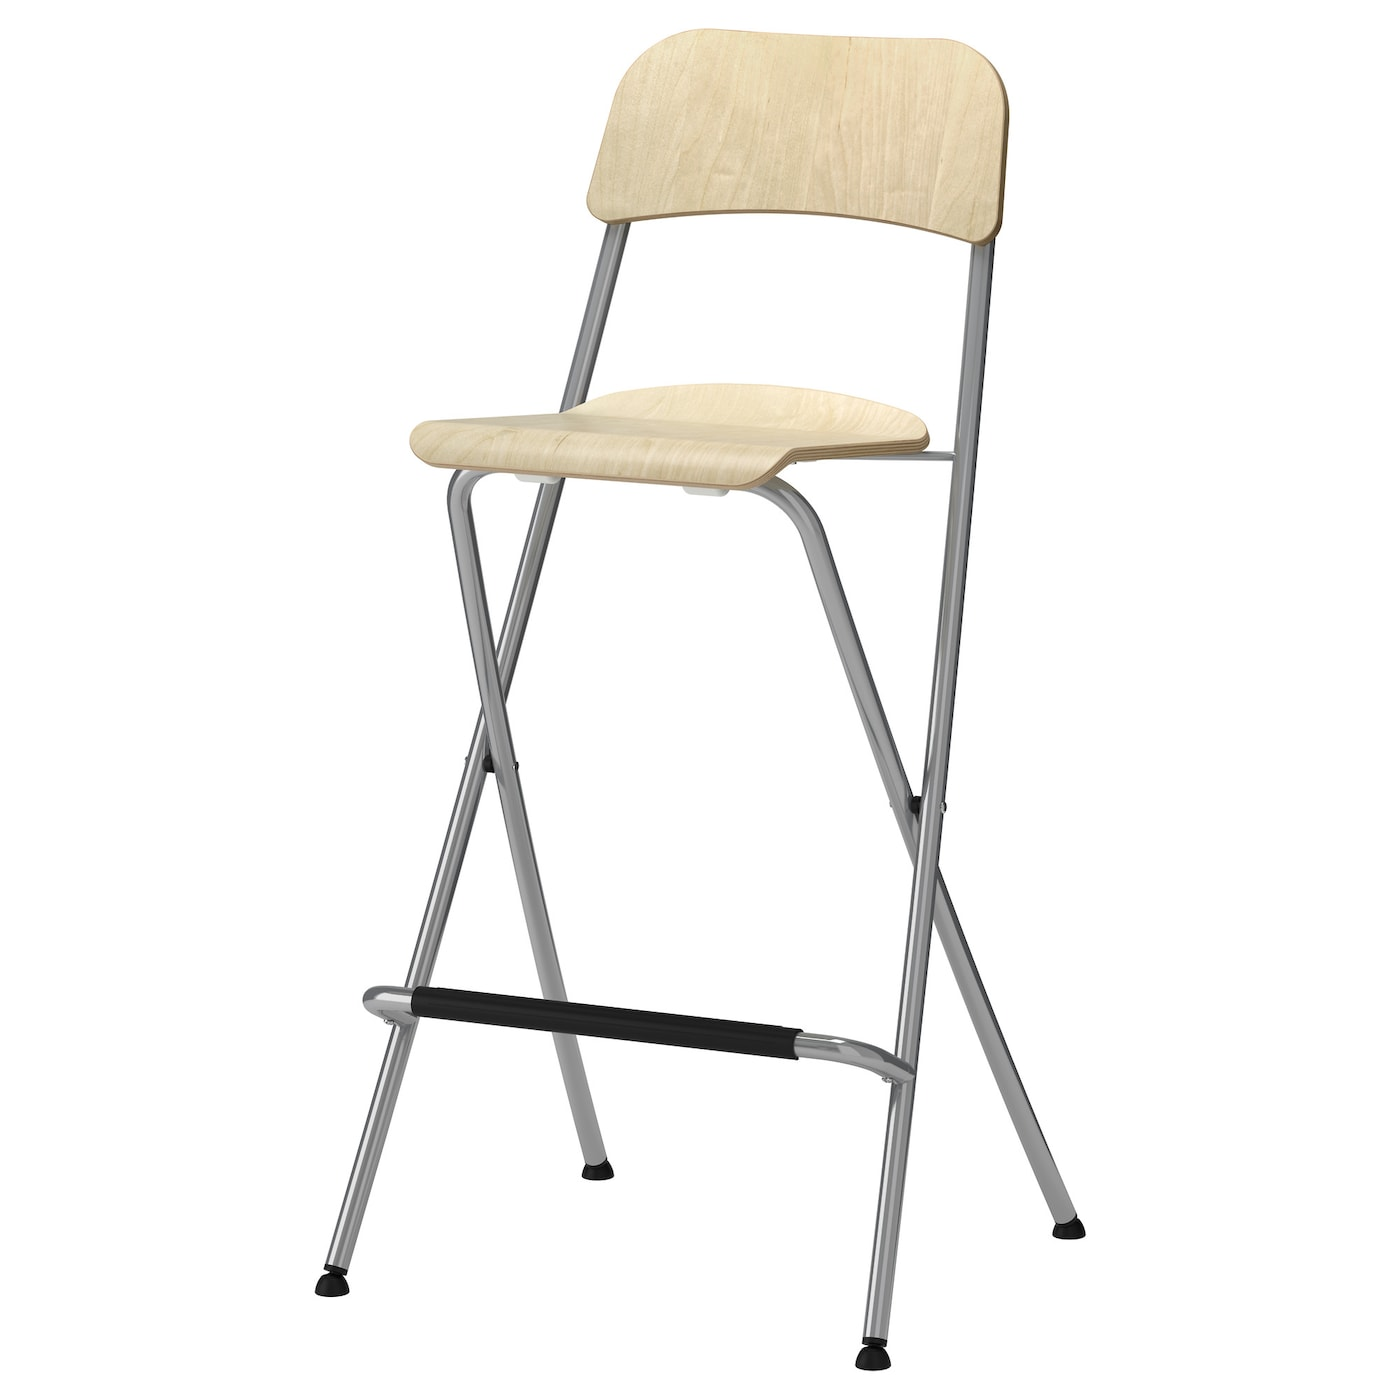 IKEA FRANKLIN bar stool with backrest foldable With footrest for relaxed sitting posture.  sc 1 st  Ikea & FRANKLIN Bar stool with backrest foldable Birch veneer/silver ... islam-shia.org